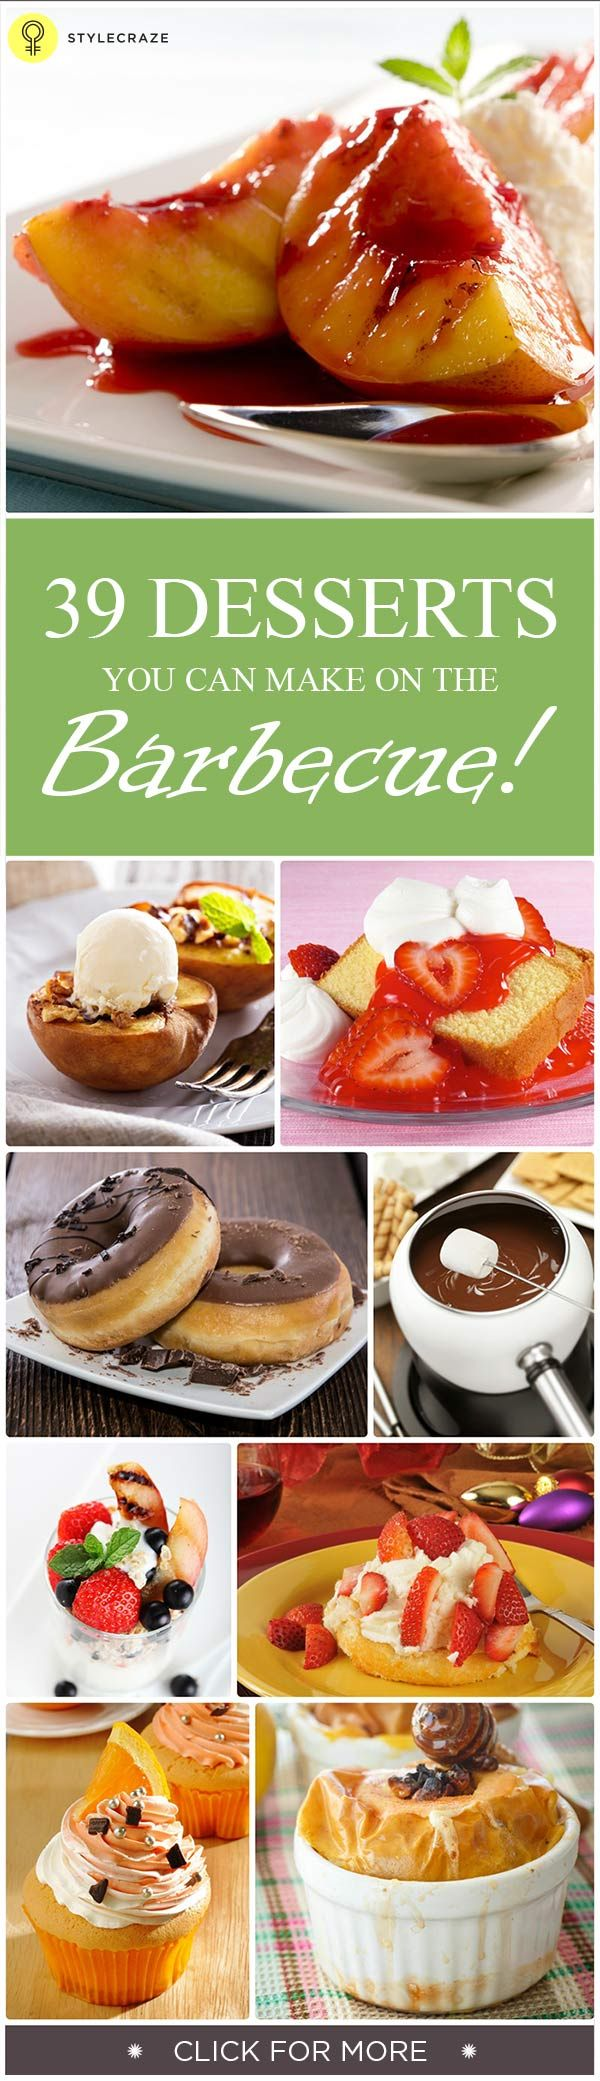 39 Desserts You Can Make On The Barbecue!